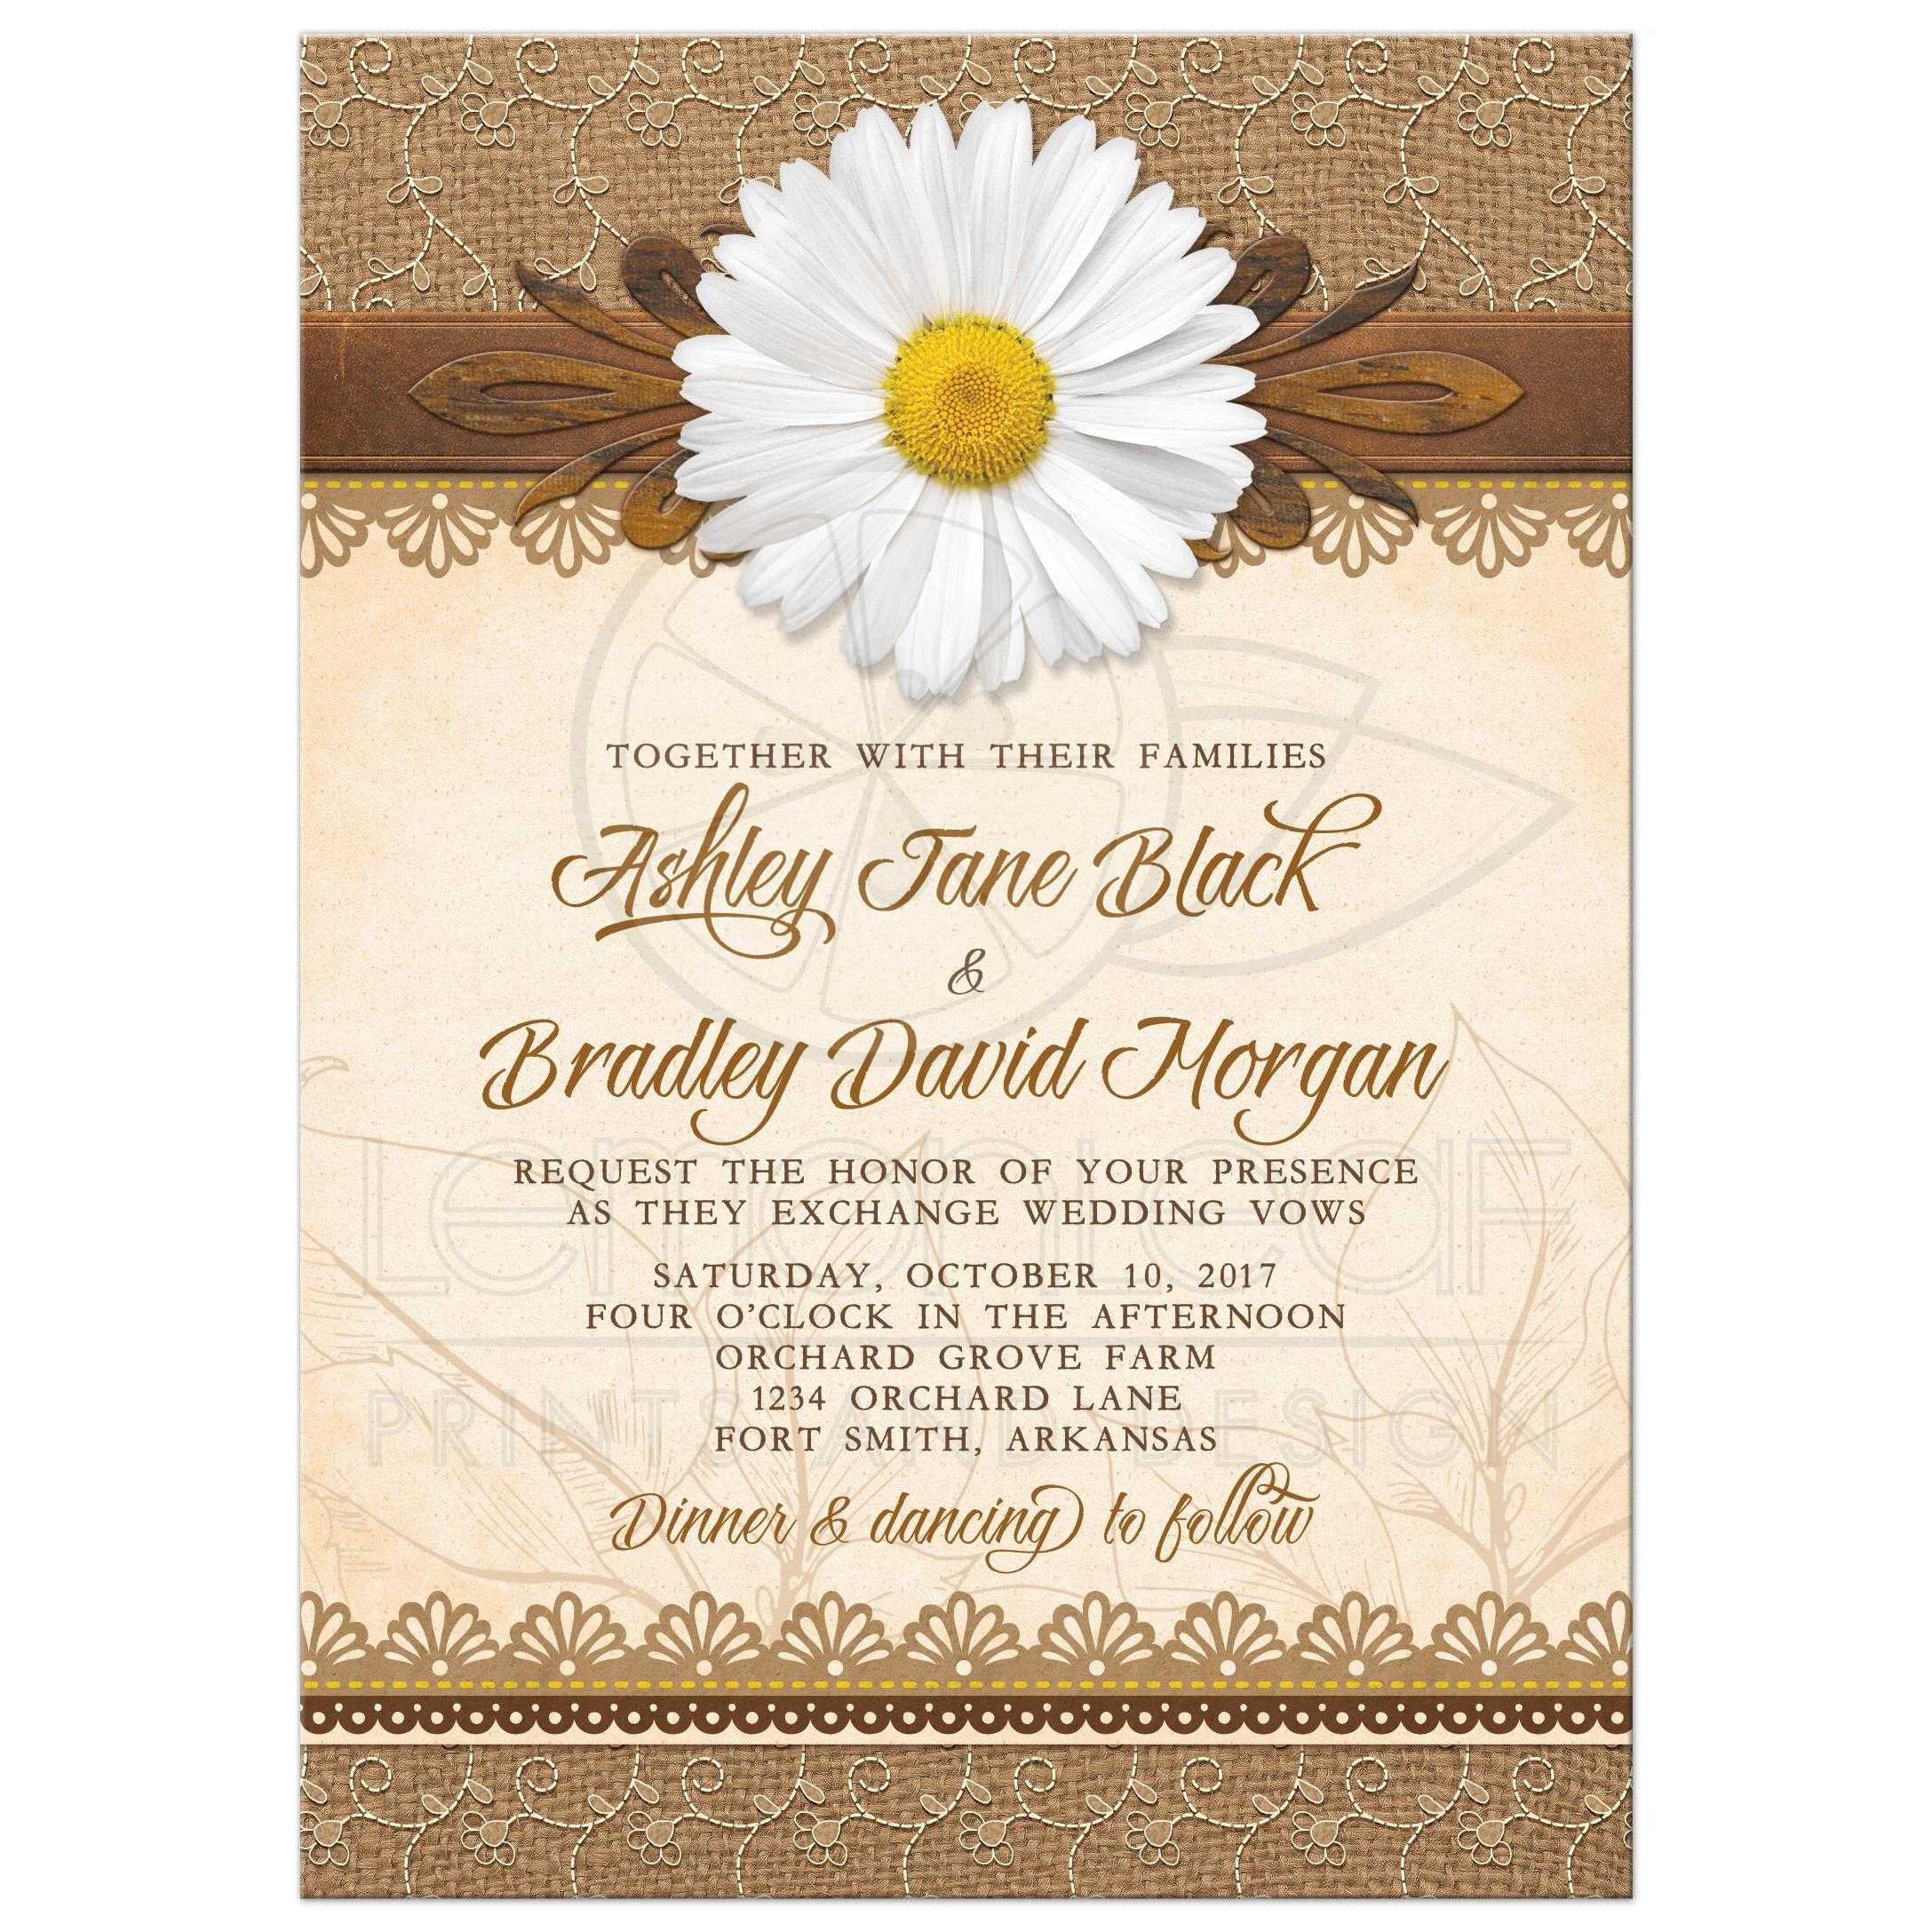 Rustic Daisy Wedding Invitations: Rustic Daisy Wedding Invitation Burlap Lace Wood